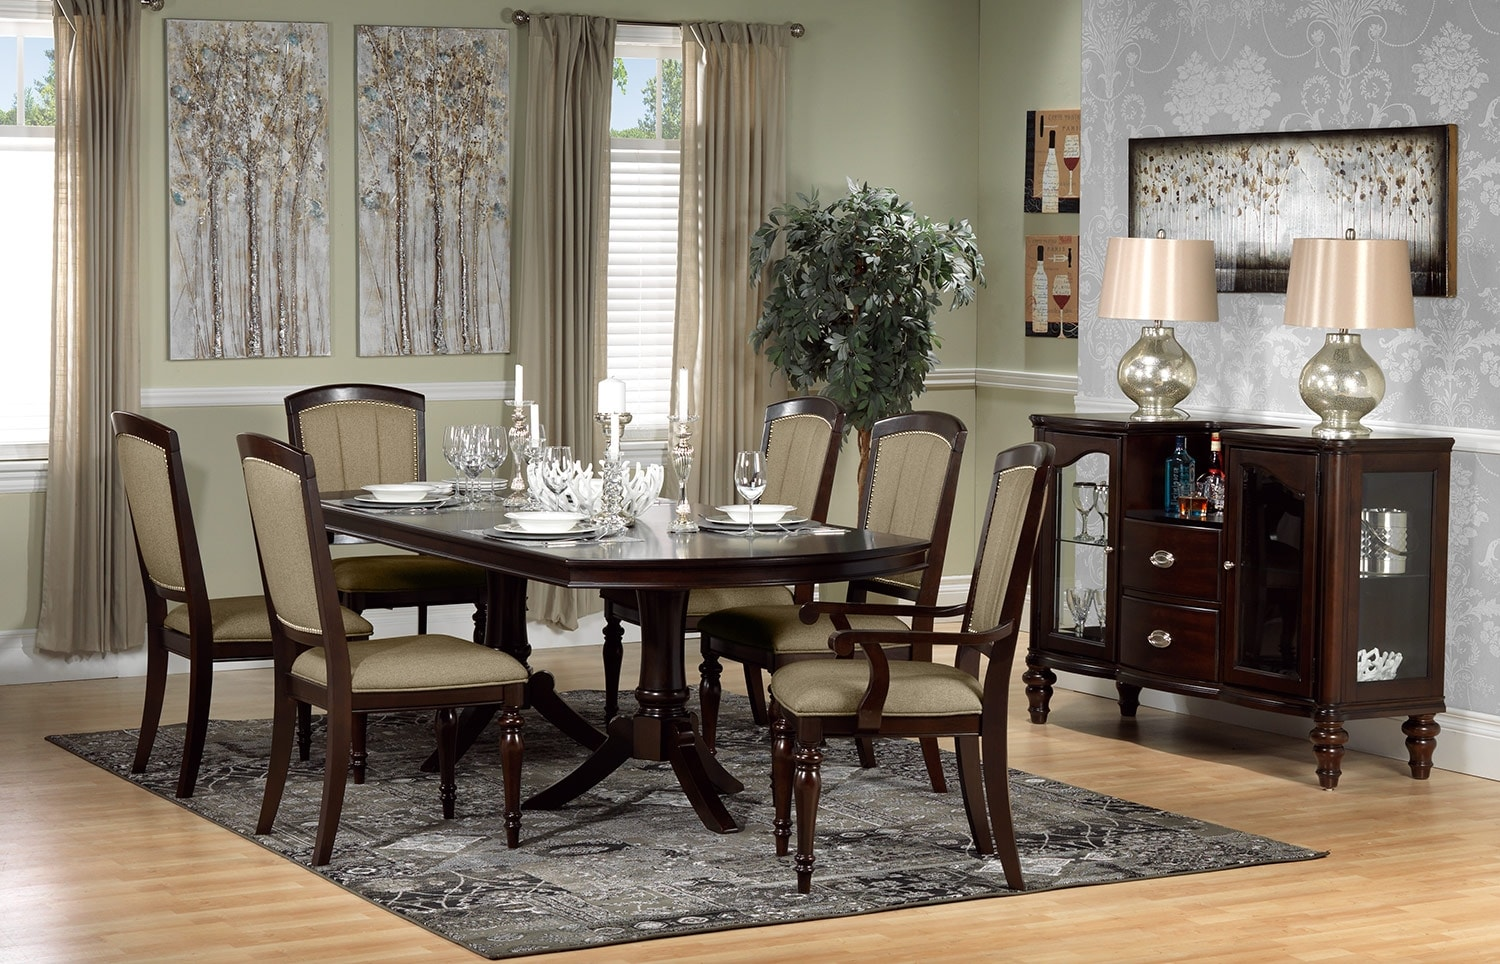 thoreaux 7 piece dining room set dark cherry leon 39 s. Black Bedroom Furniture Sets. Home Design Ideas